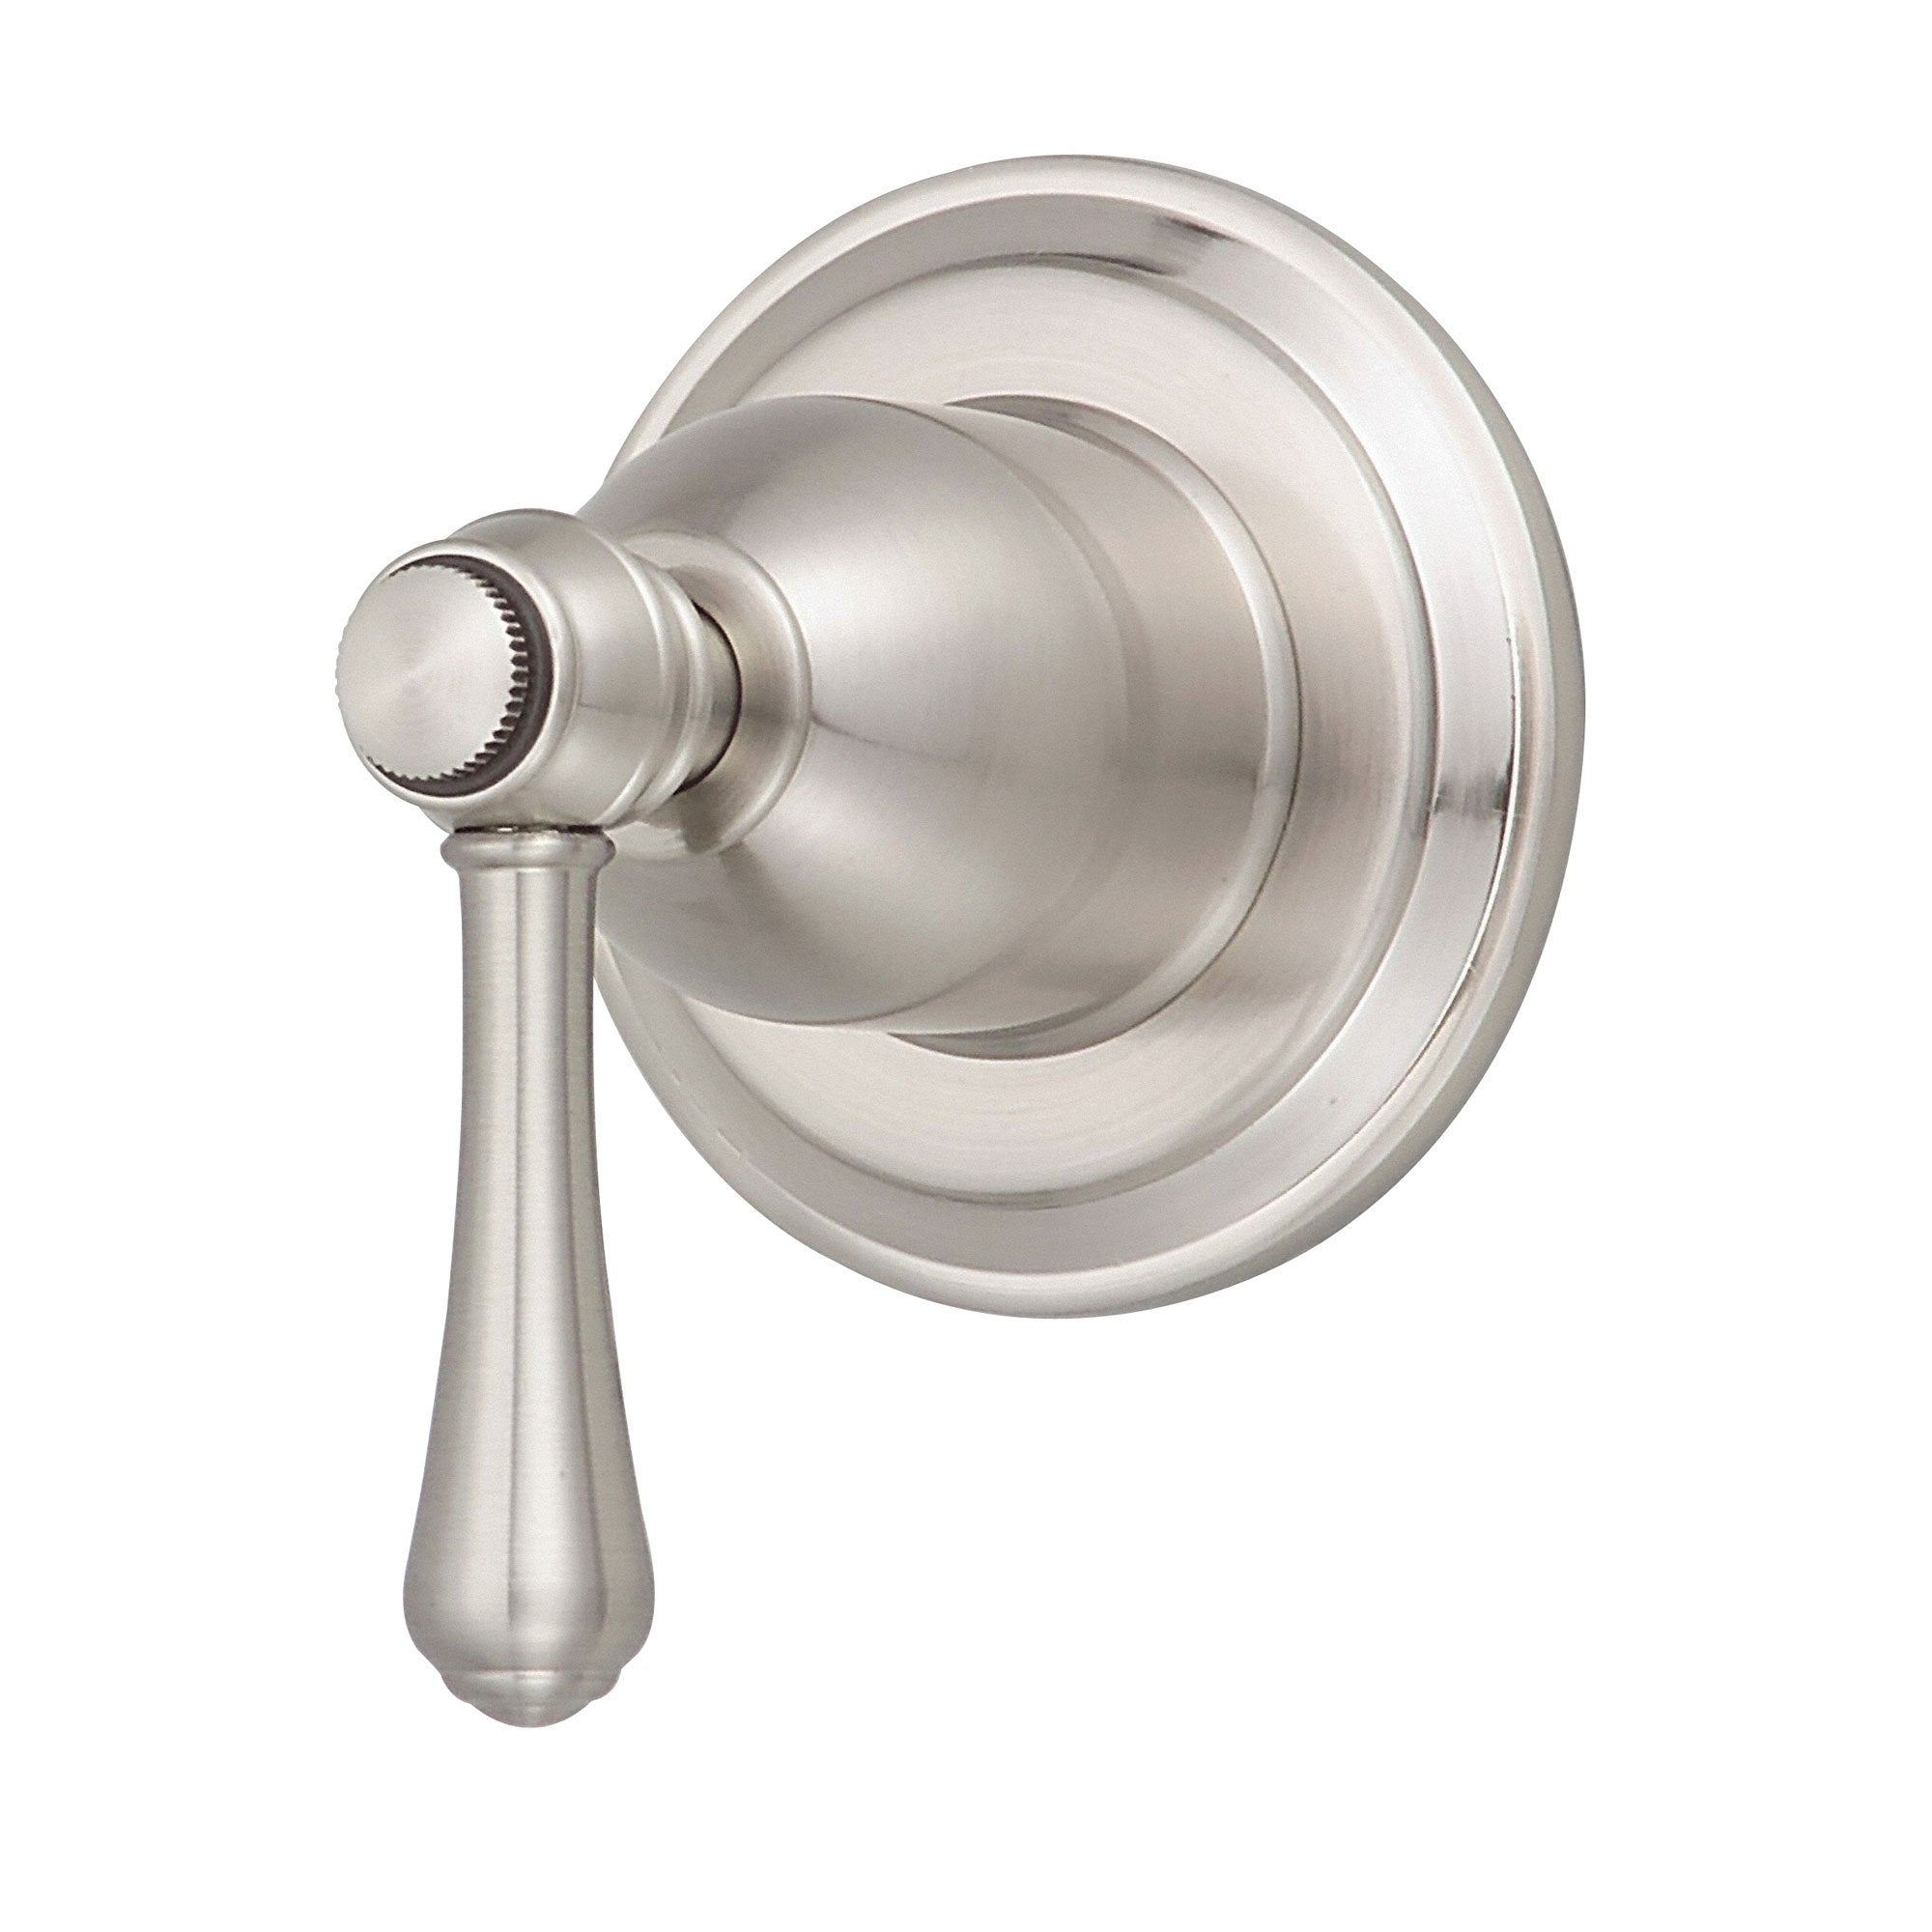 Danze Opulence Brushed Nickel 1 Handle Volume Control 4-Port Shower Diverter INCLUDES Rough-in Valve